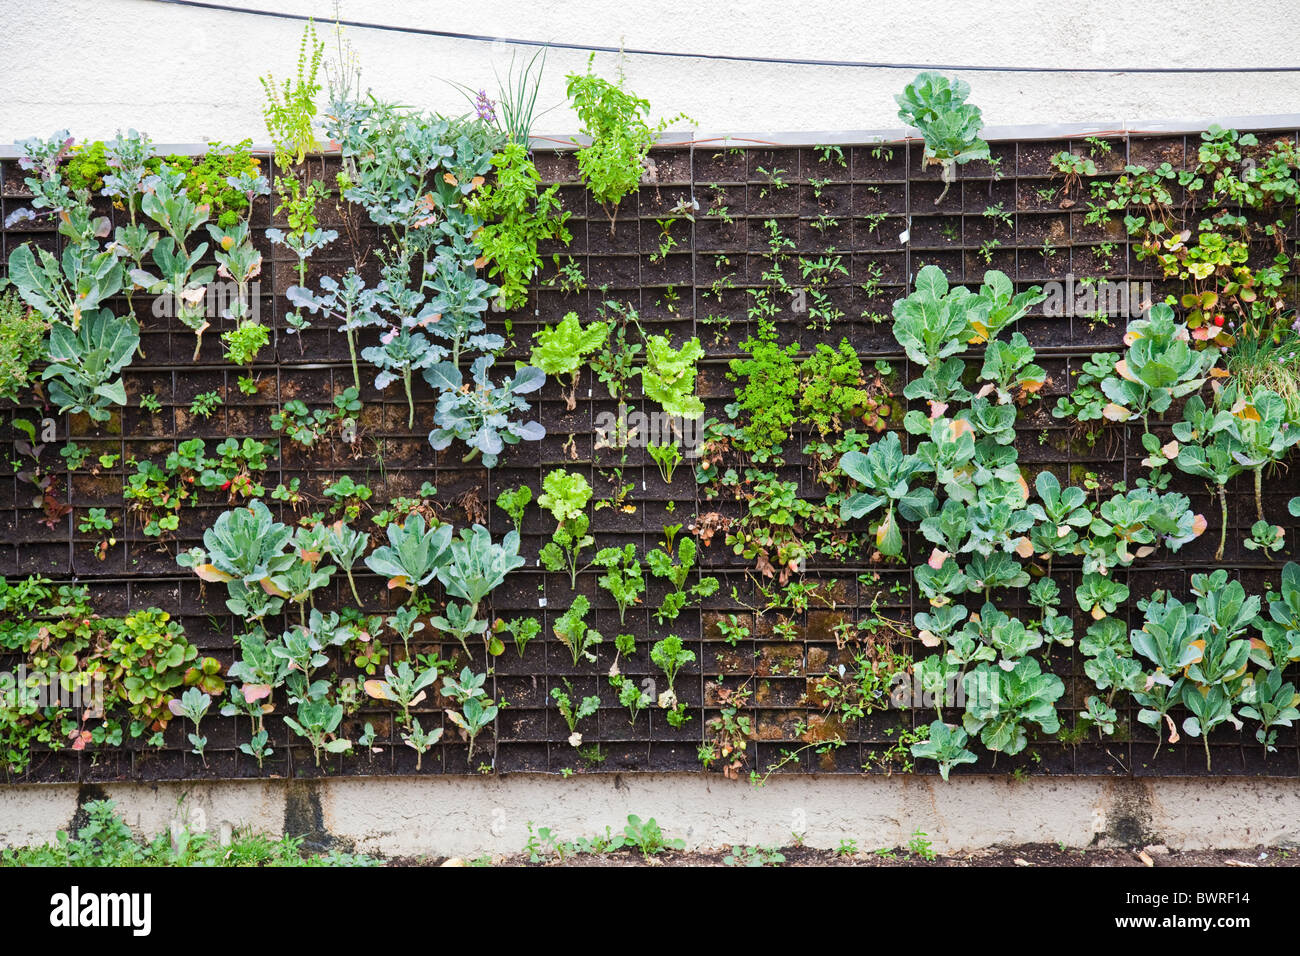 The Edible Garden Wall Vertical Garden Created By Urban